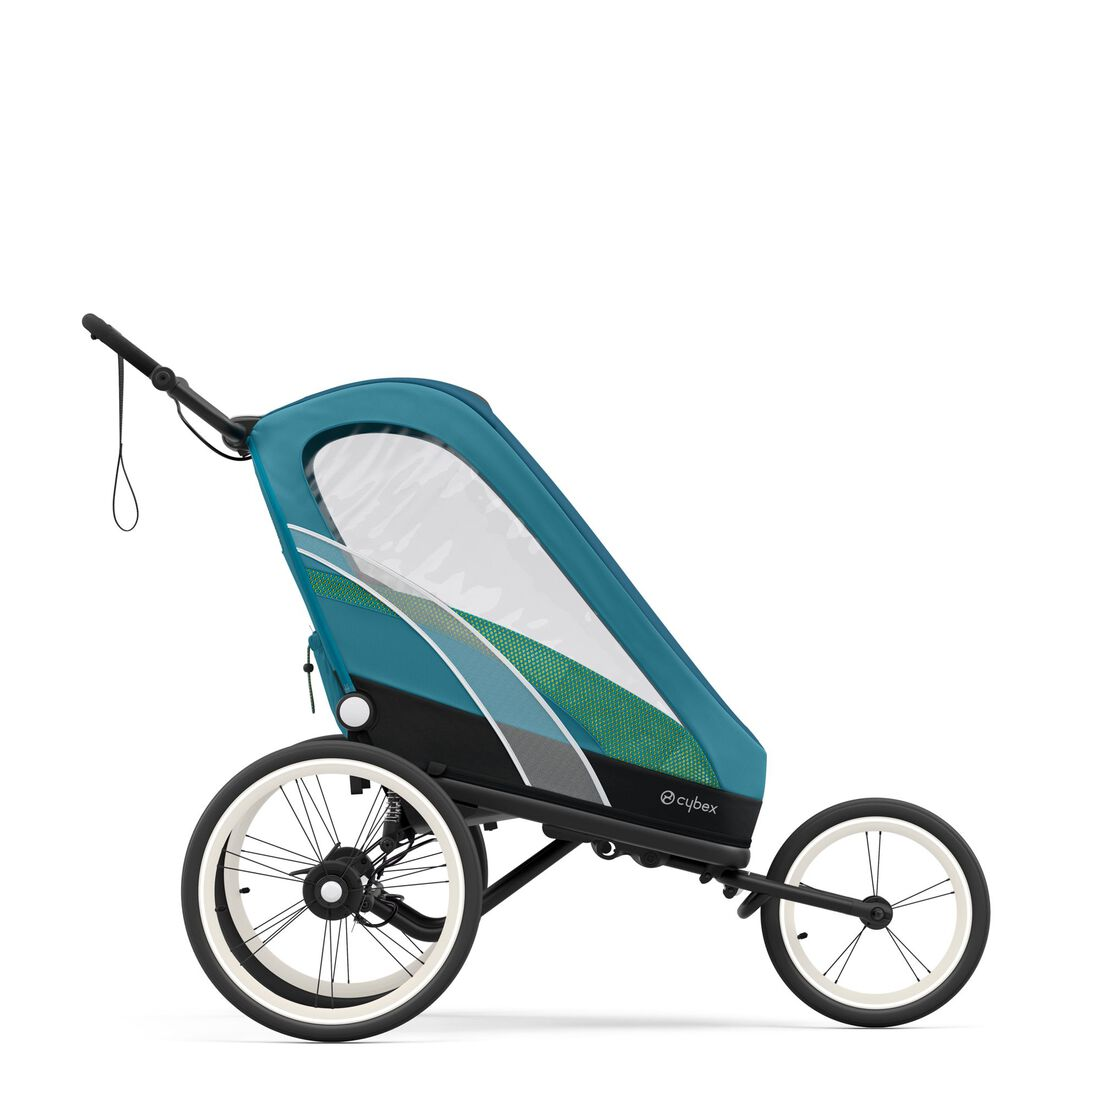 CYBEX Zeno Seat Pack - Maliblue in Maliblue large image number 4